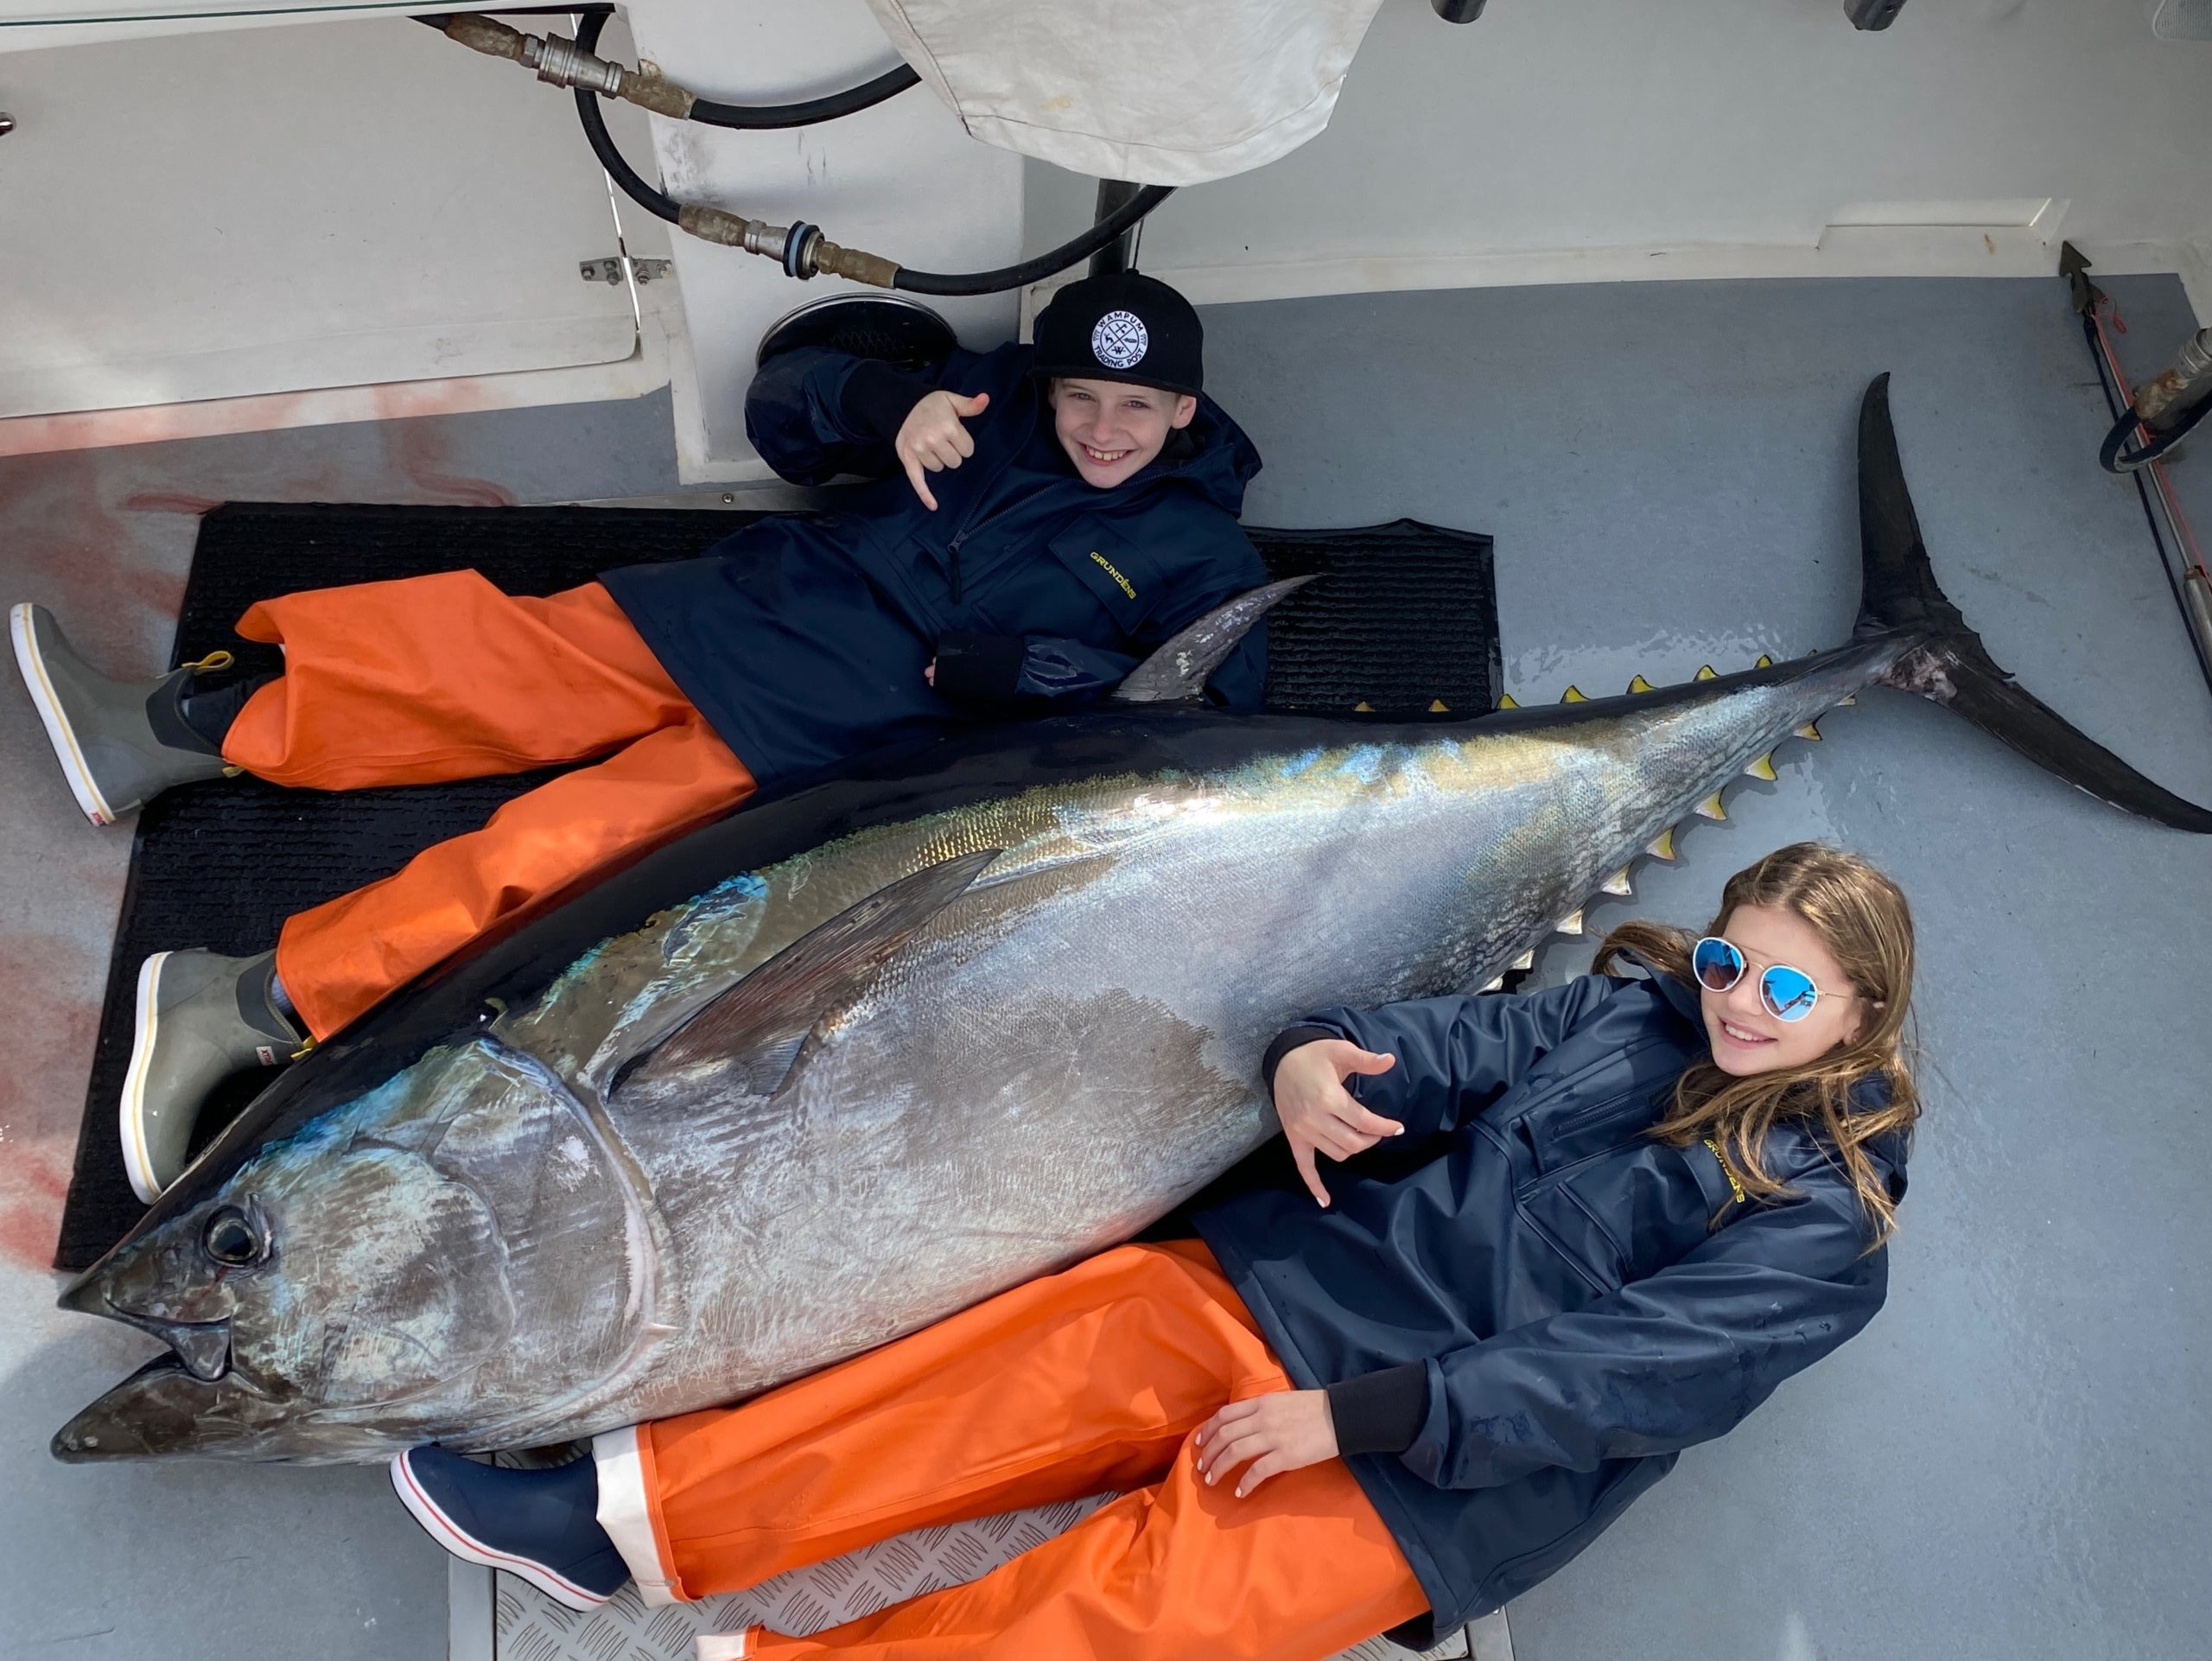 Montauk kids Brayden and Carly Fromm helped their dad deck this bluefin tuna while fishing in North Carolina this week.